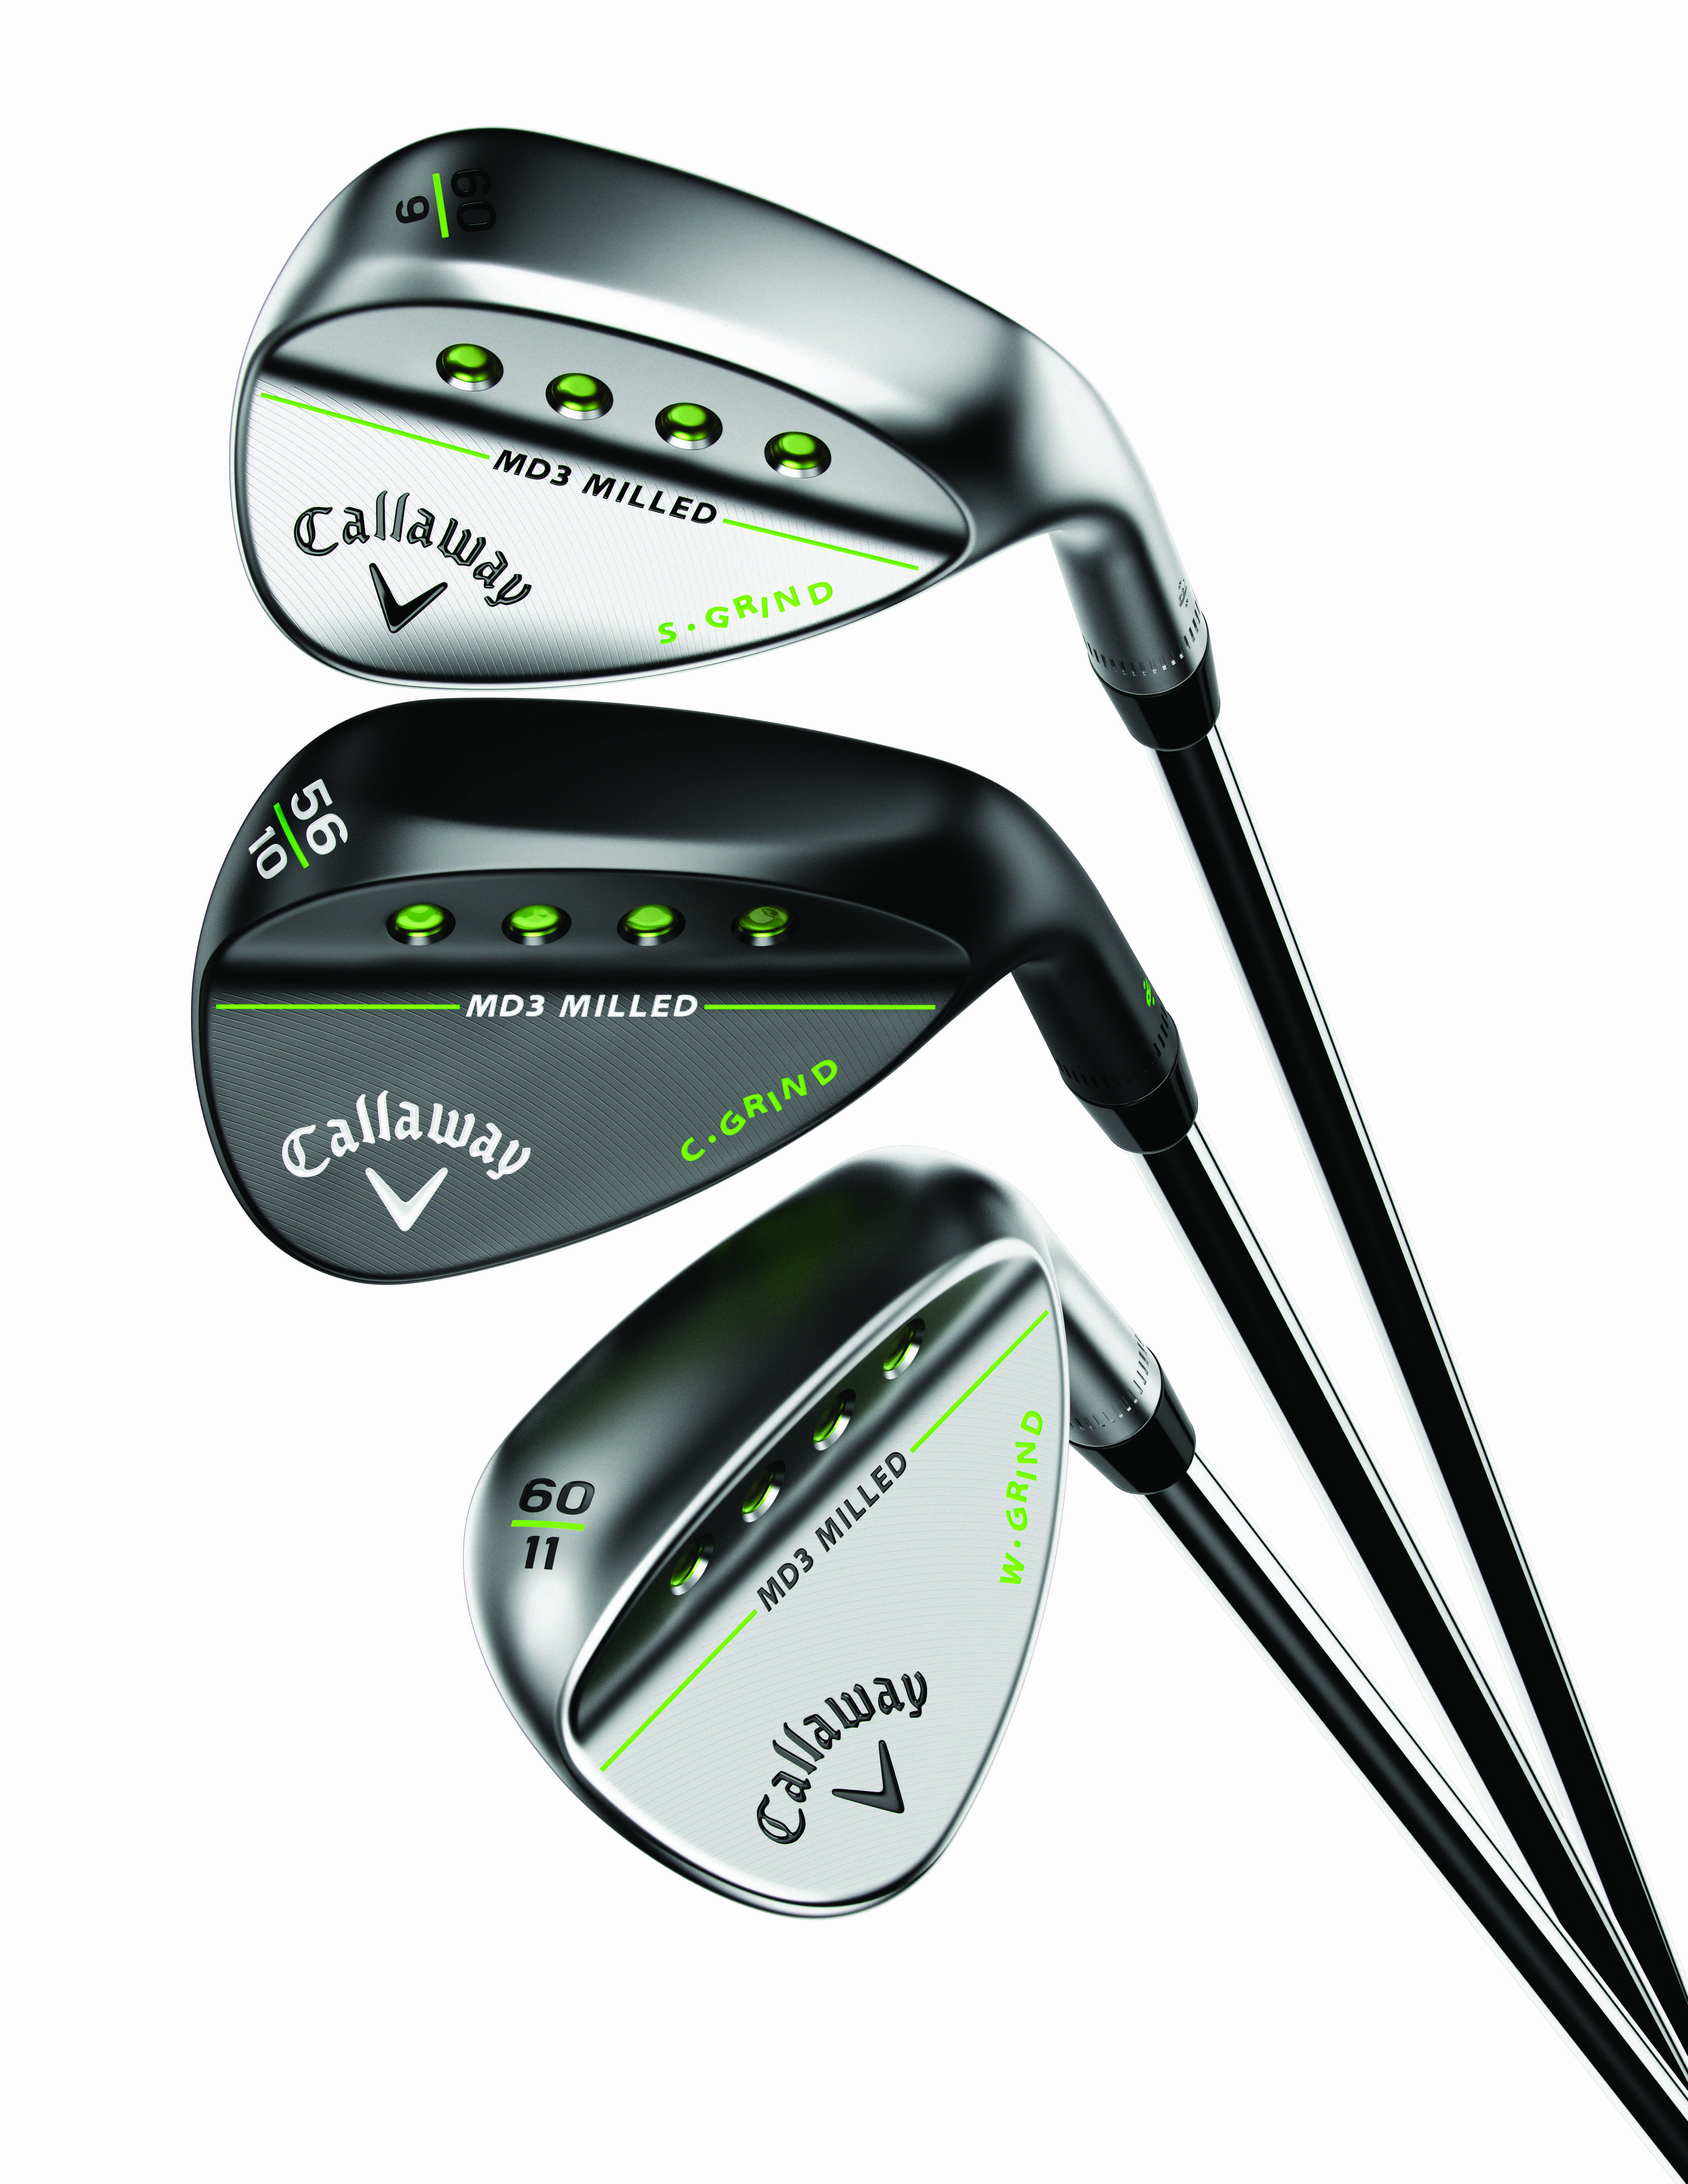 Callaway Golf Announces Md3 Milled Wedges